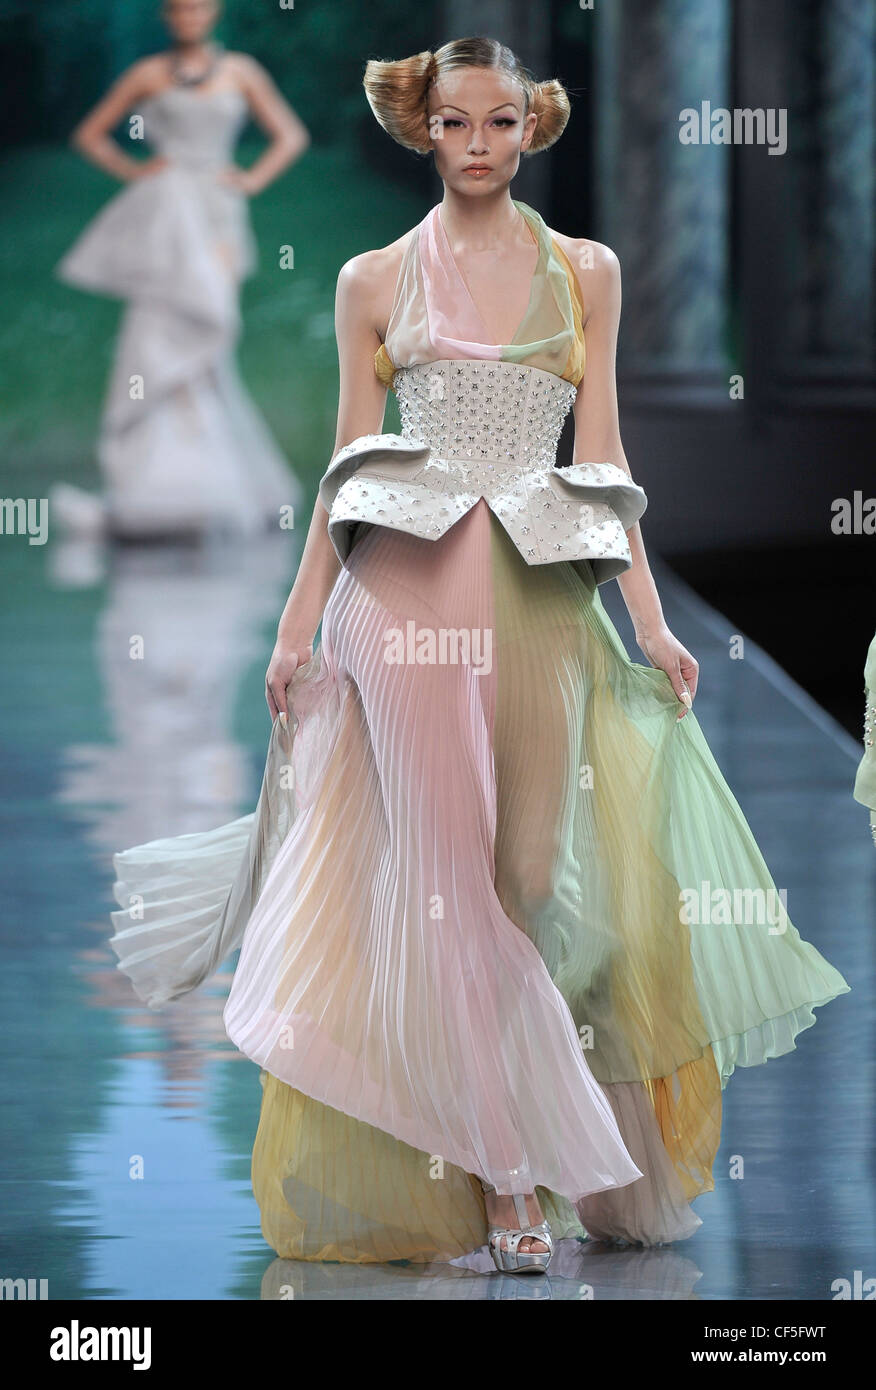 e4d43383a2b7 Christian Dior Paris Haute Couture Autumn Winter Model wearing a ...